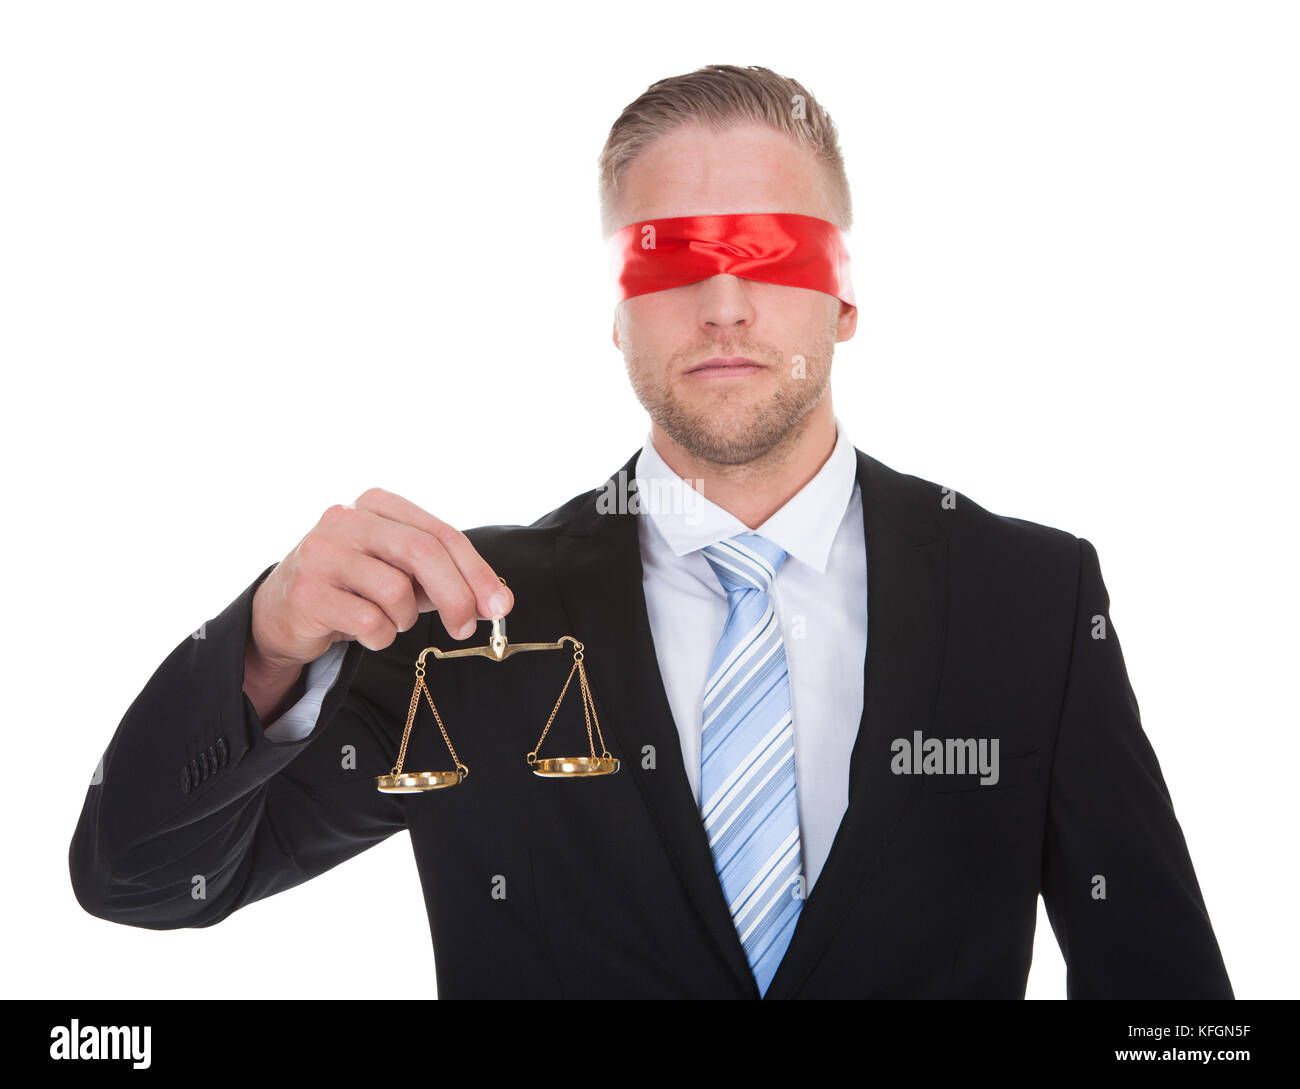 Lawyer or judge with the scales of justice in his hand wearing a blindfold  conceptual of impartiality and fairness - Stock Image